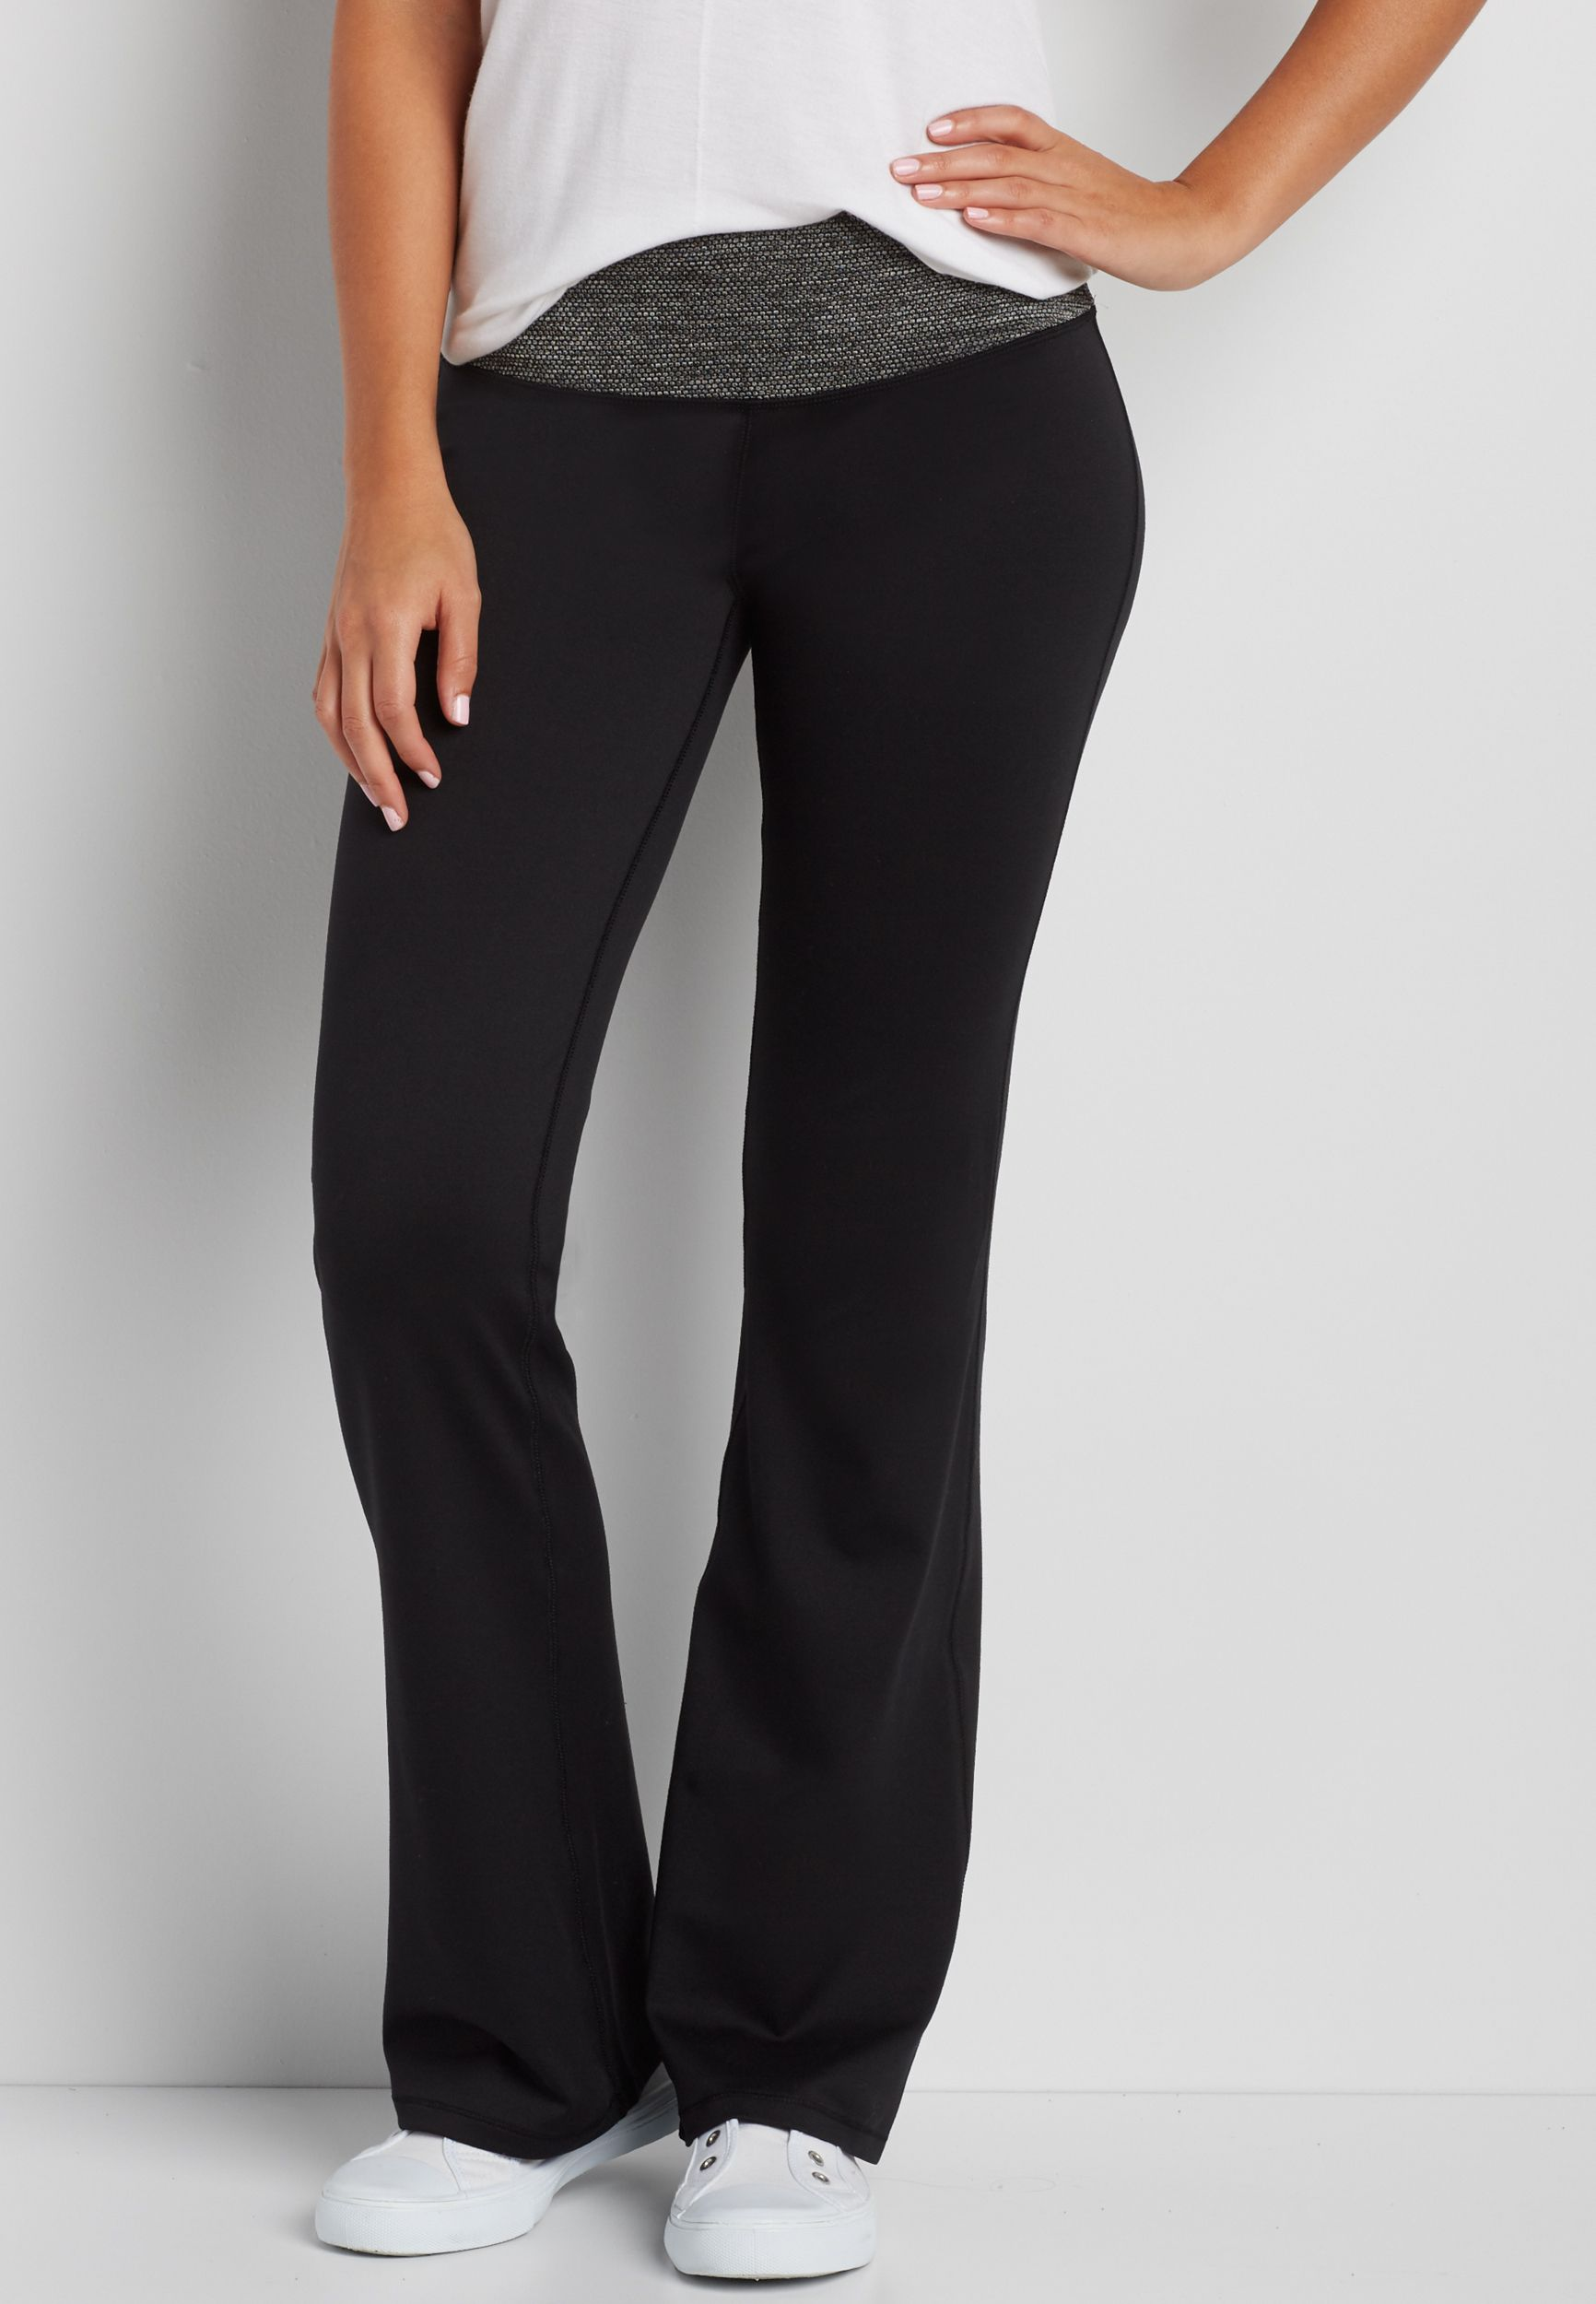 yoga pants with textured waistband | Clothes, Pants